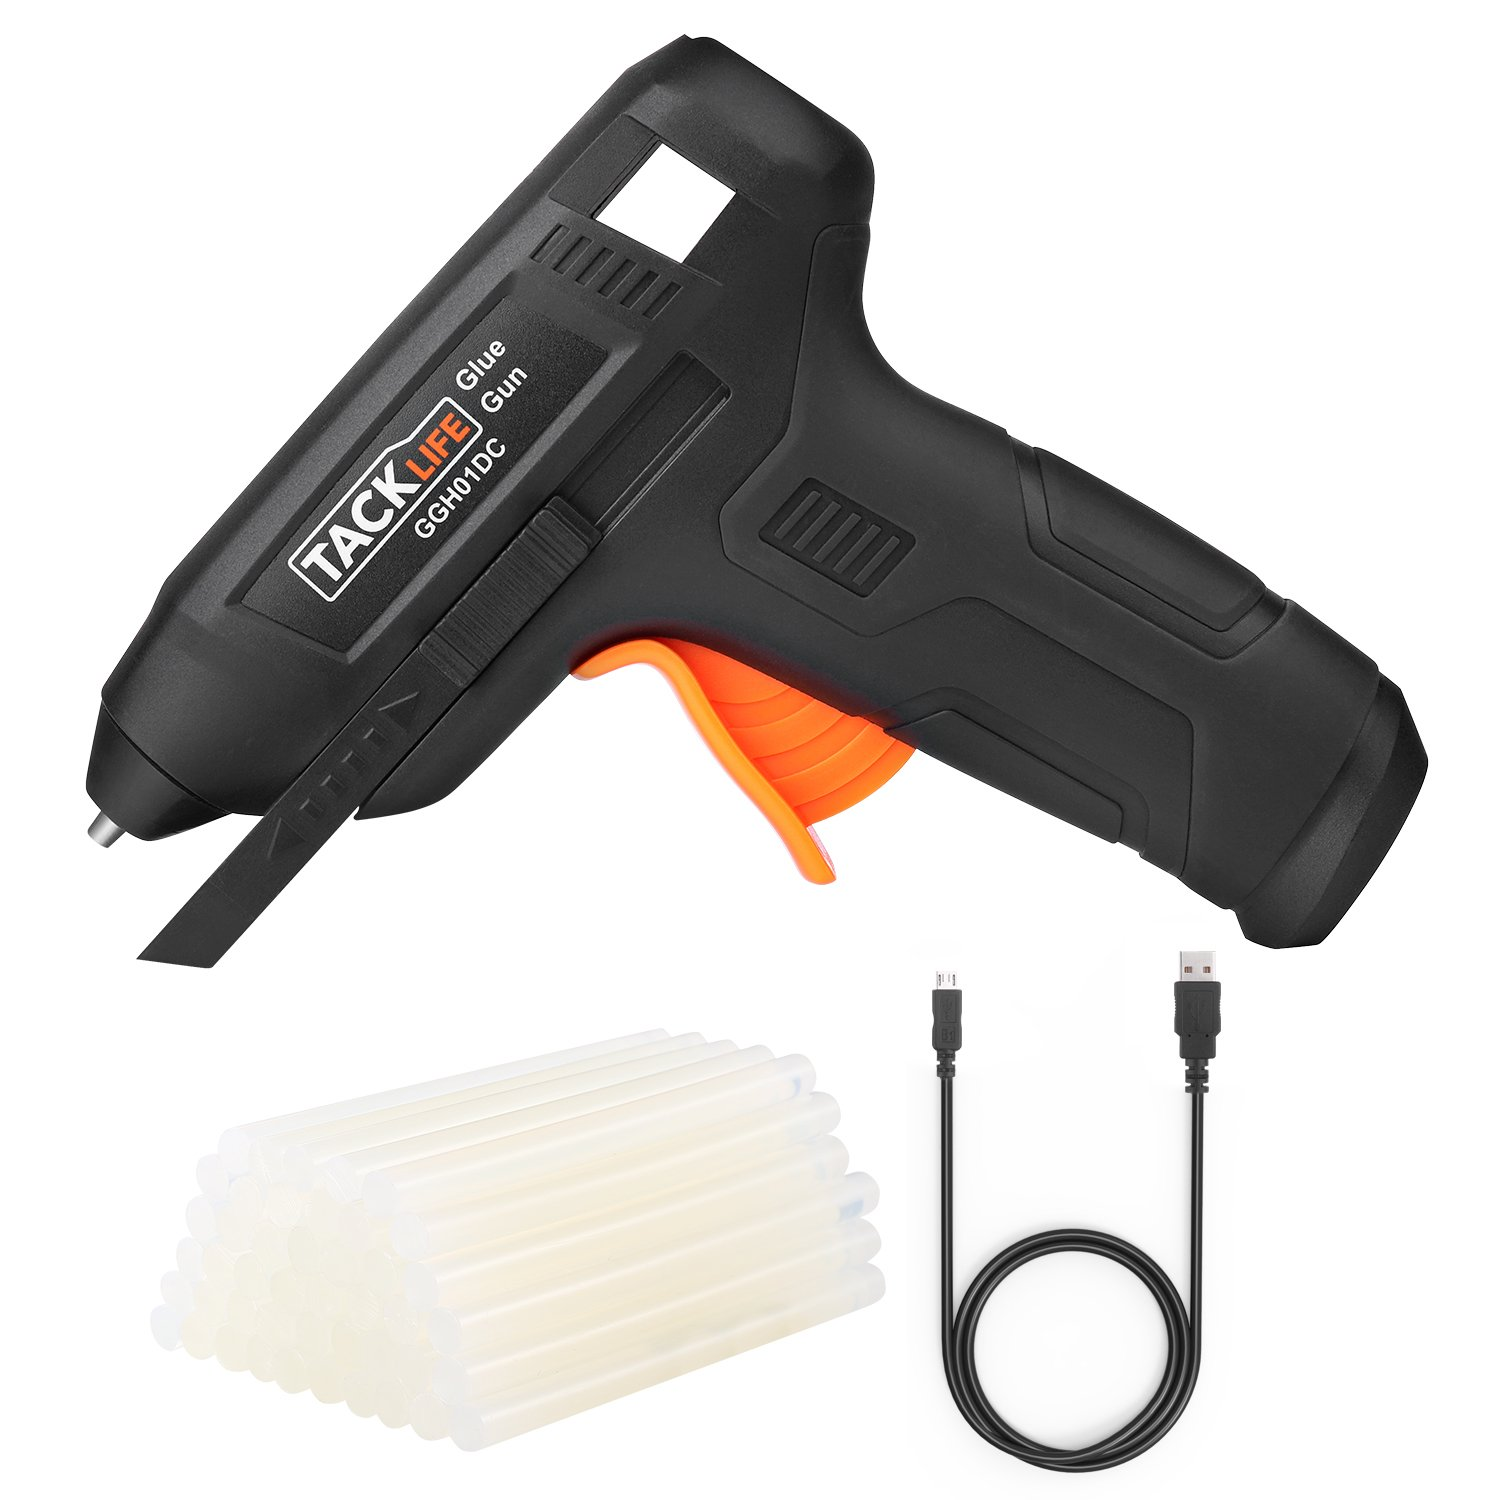 Hot Glue Gun Cordless with 50pcs Glue Sticks, Tacklife 3.6V Rechargeable Melting Glue Gun with USB Charging Cable, Seperate On/Off Switch for DIY and Repair Kit - GGH01DC